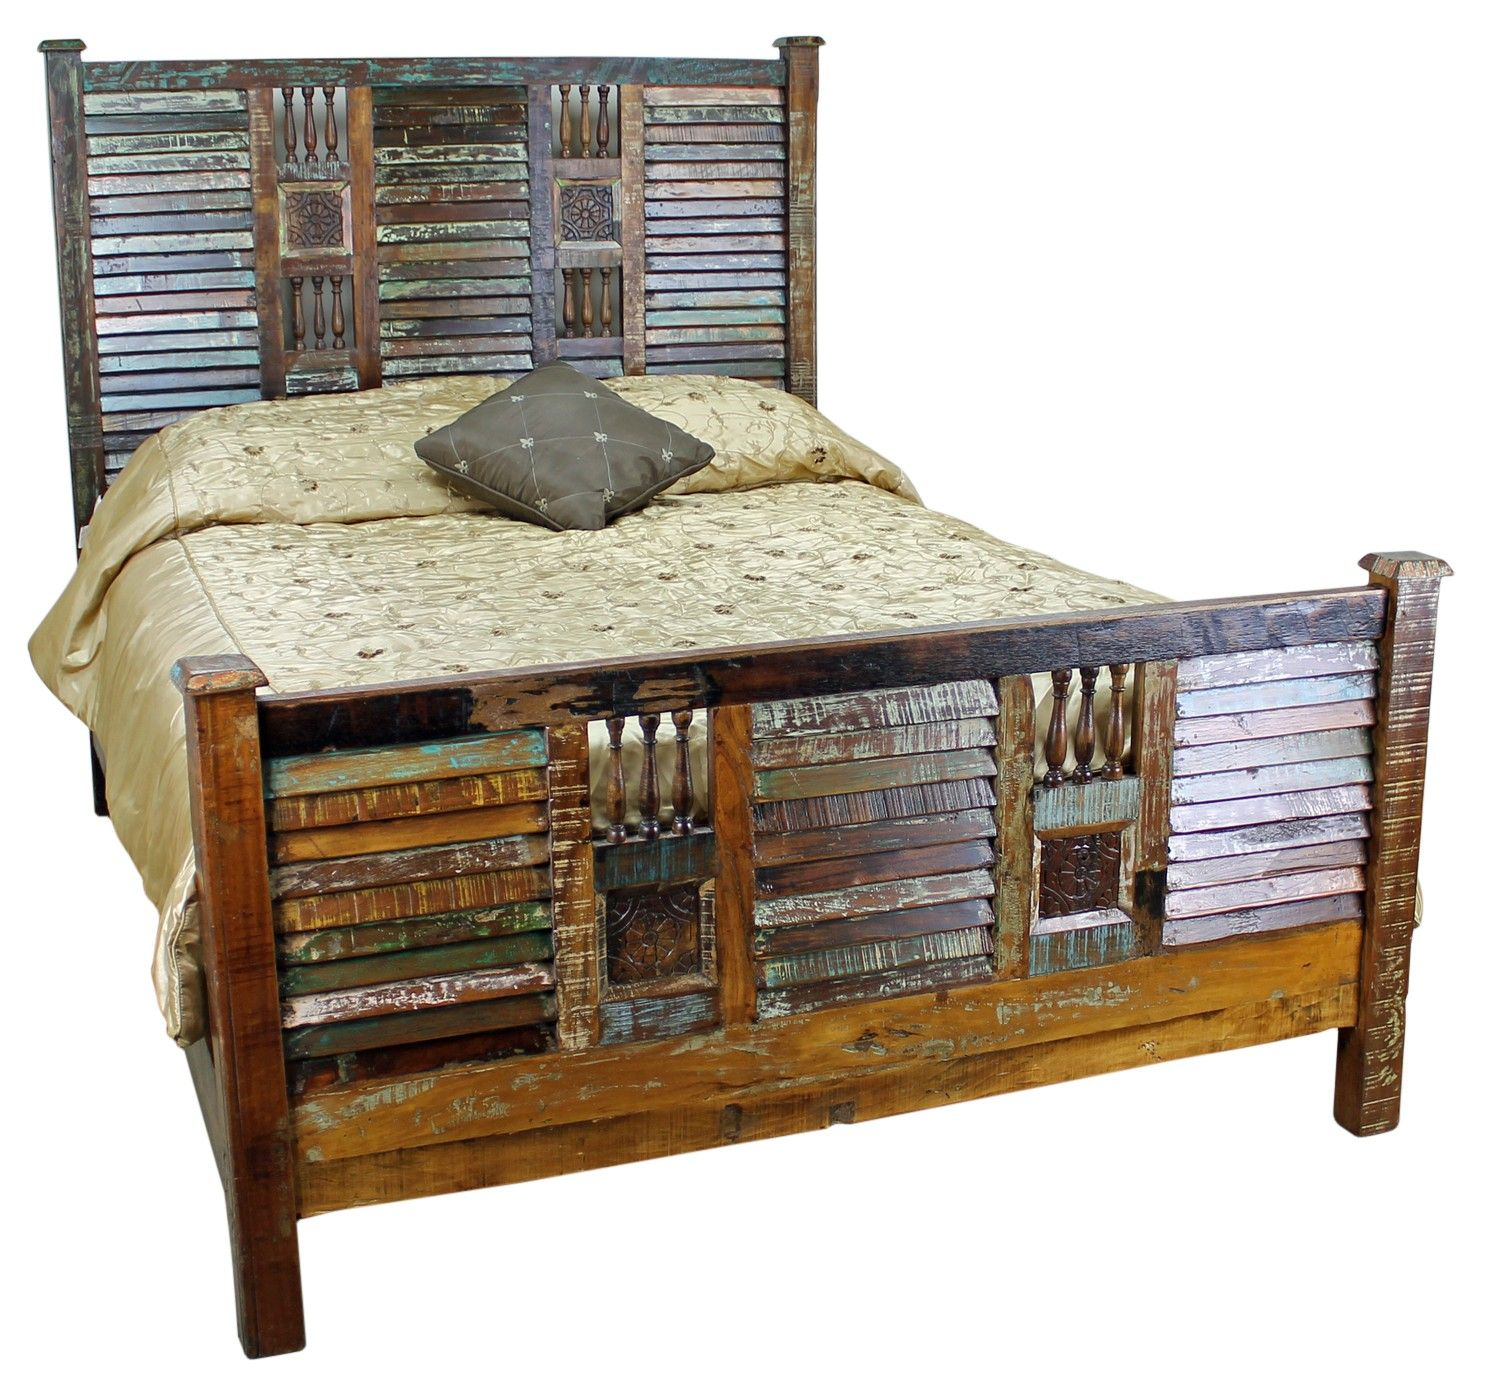 Mexican Pine Bedroom Furniture Pine Rustic Chest Small Special Order Rustic Wood Wood Beds